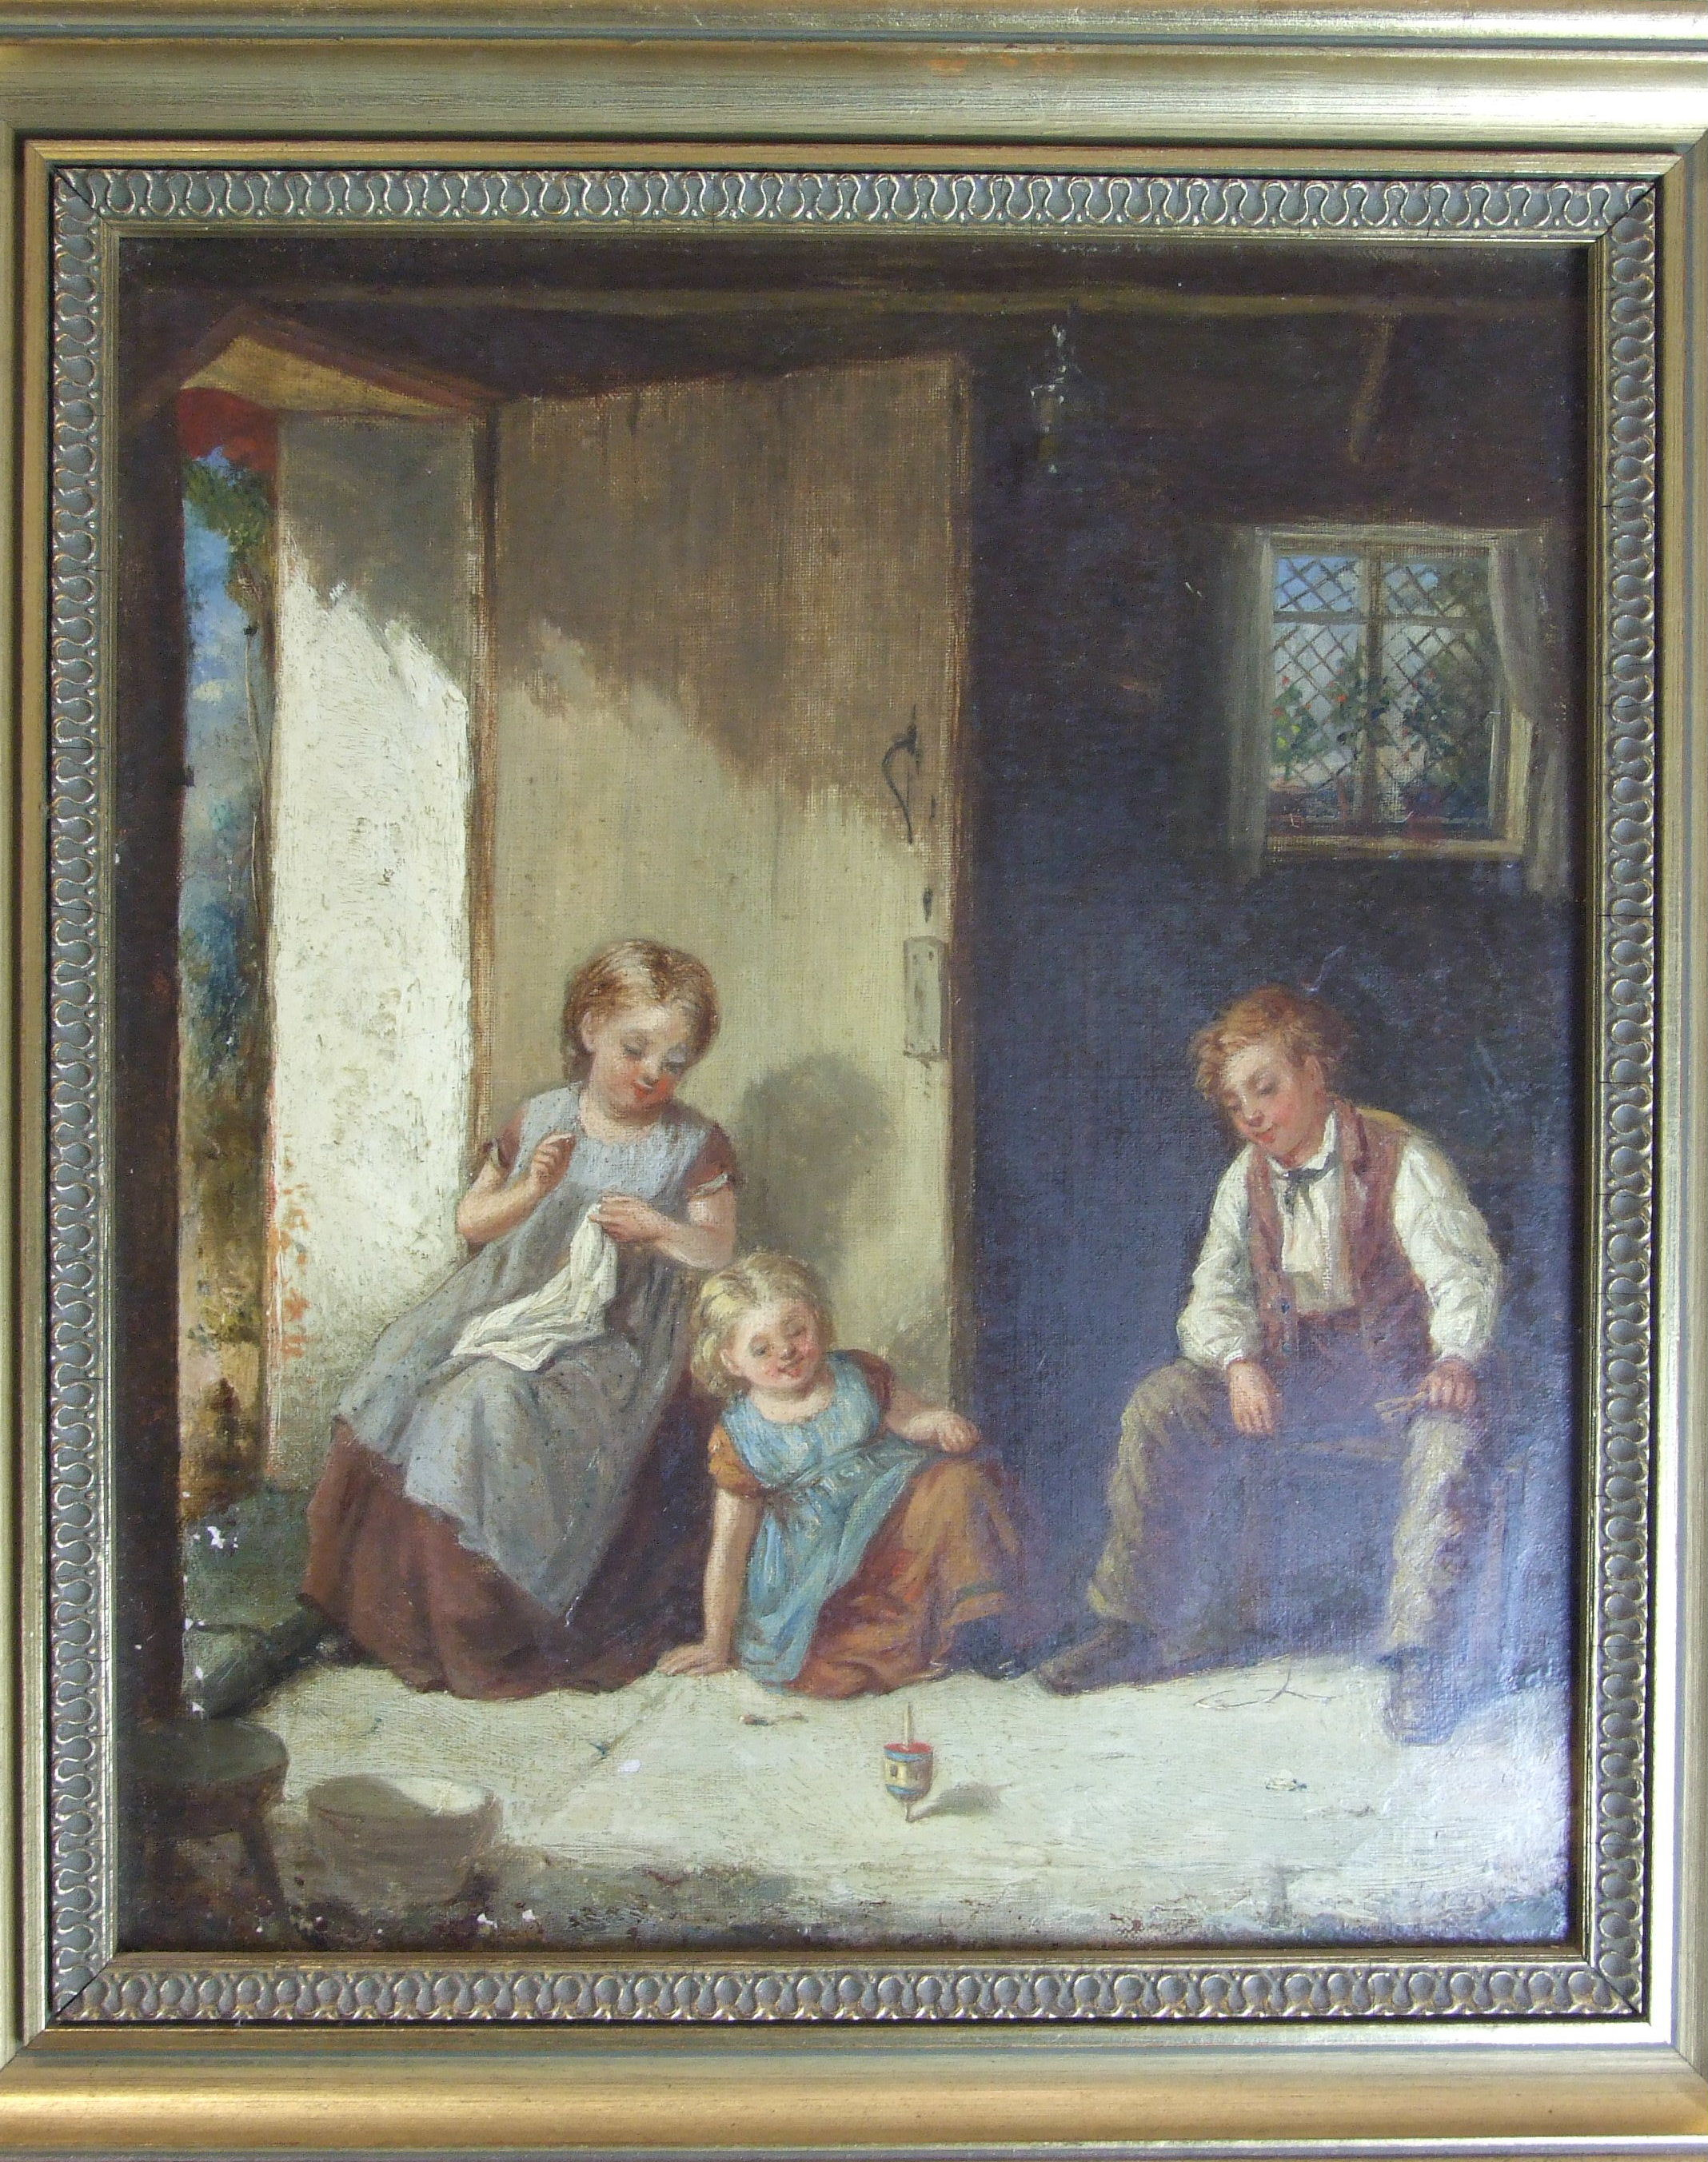 Lot 2 - 19th century English School THE SPINNING TOP, CHILDREN PLAYING IN AN INTERIOR Indistinctly-signed